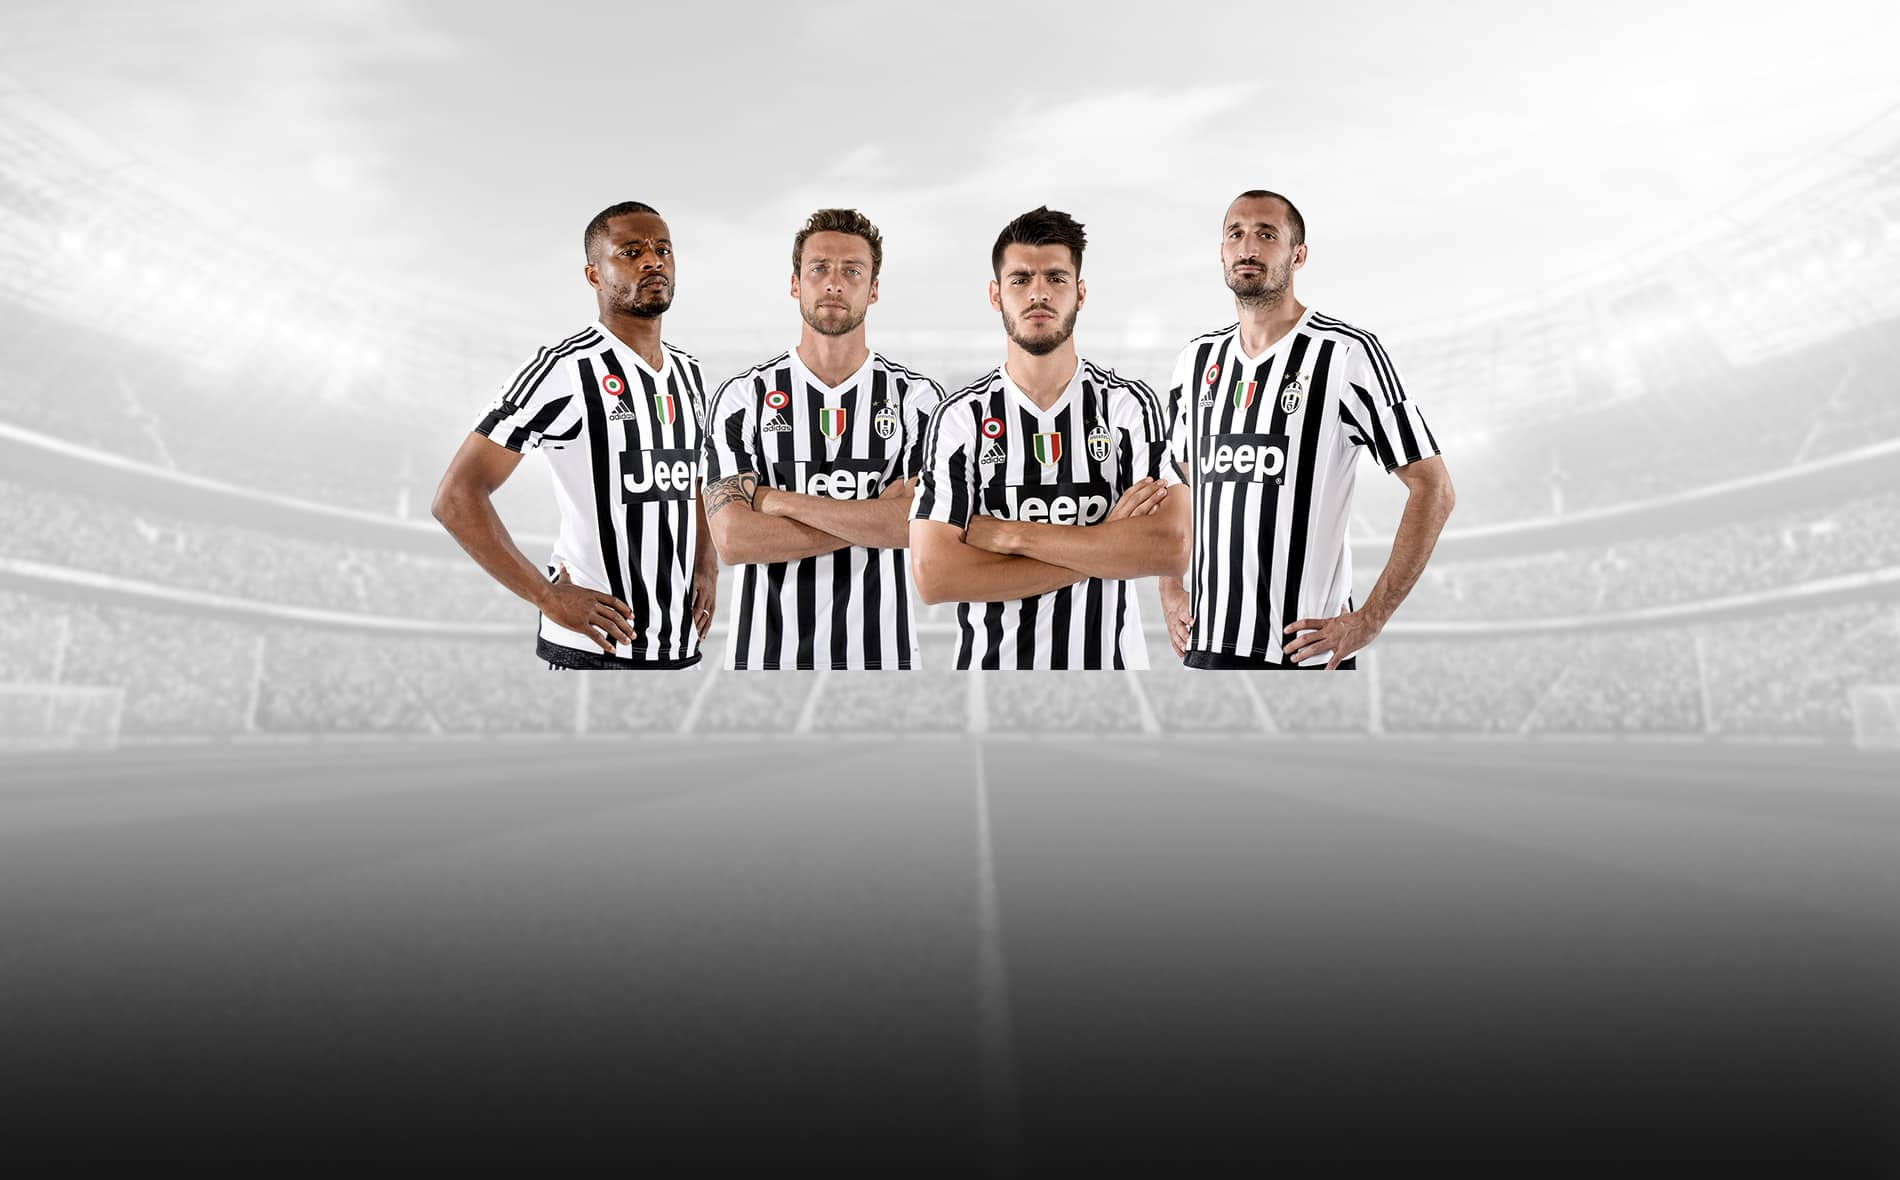 2015 Jeep Sponsors Juventus Football Club